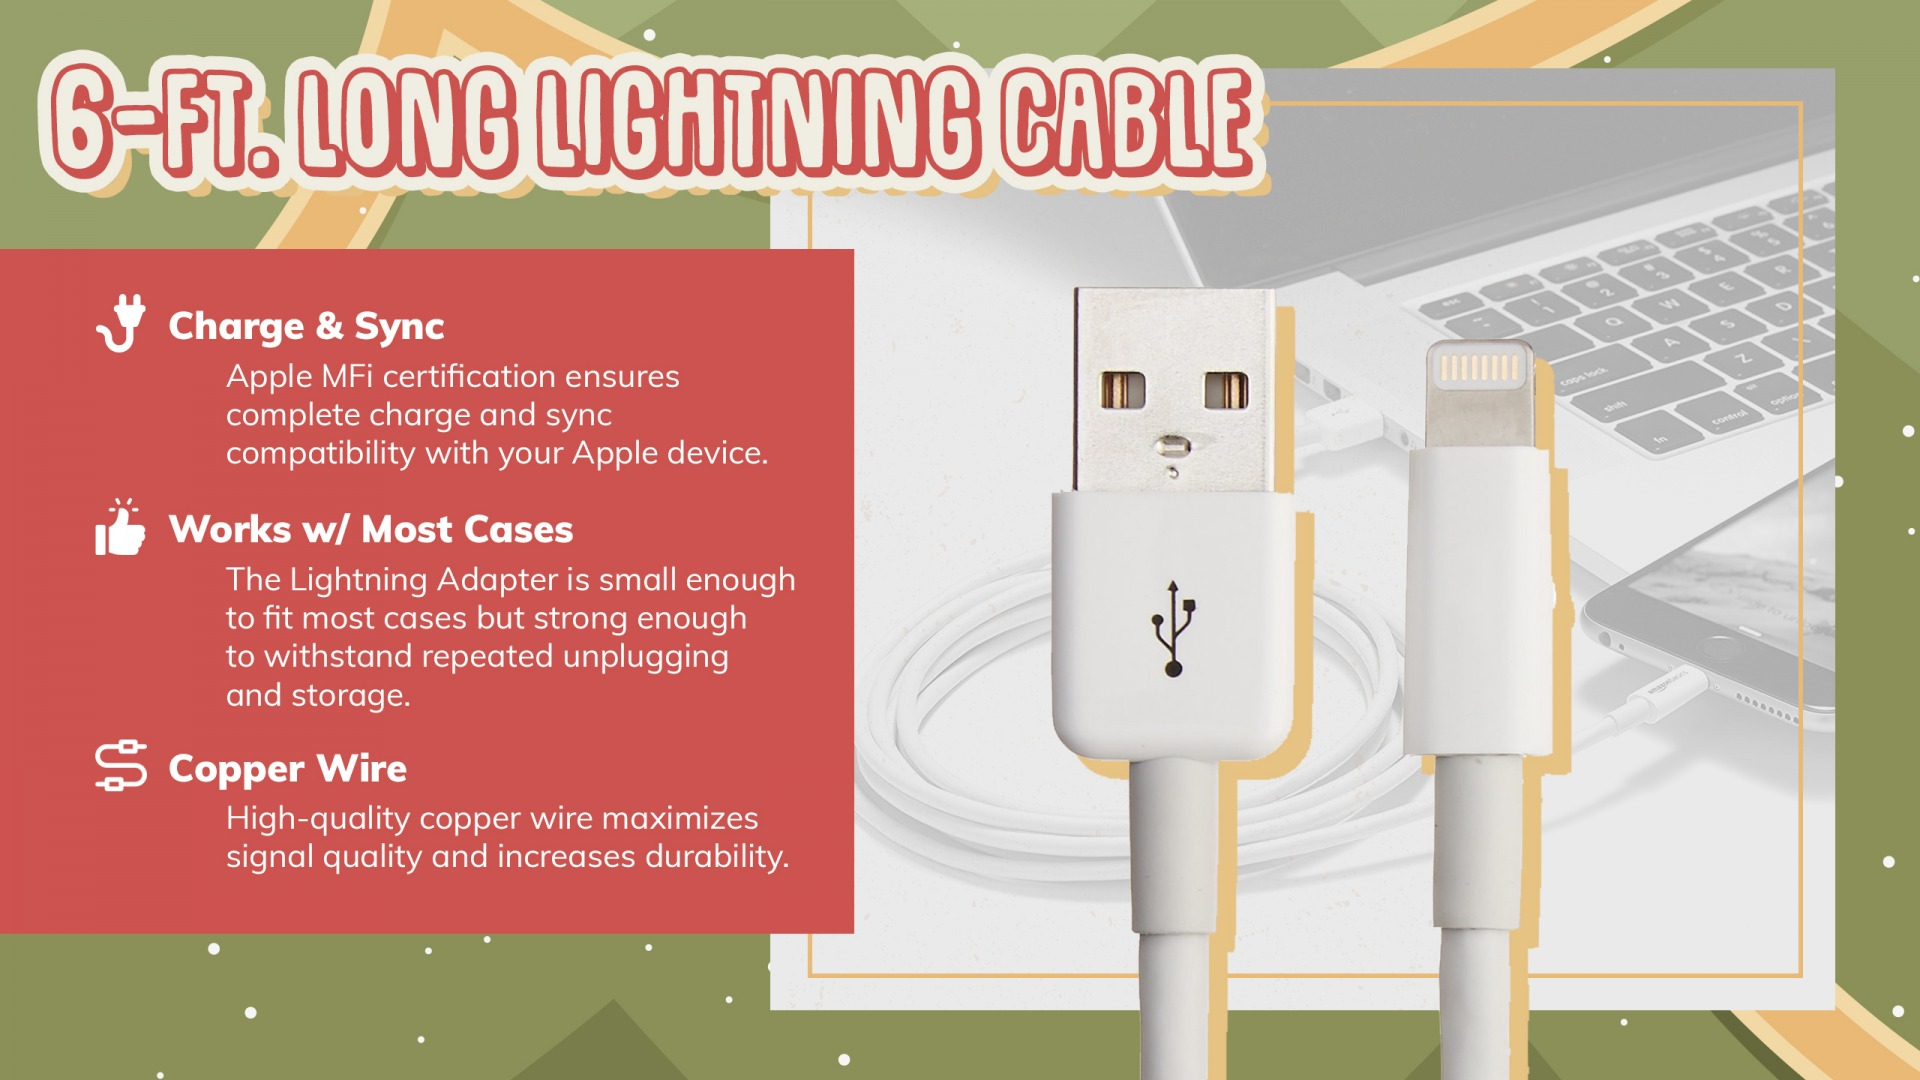 6 foot lightning cable in iPhone gift guide